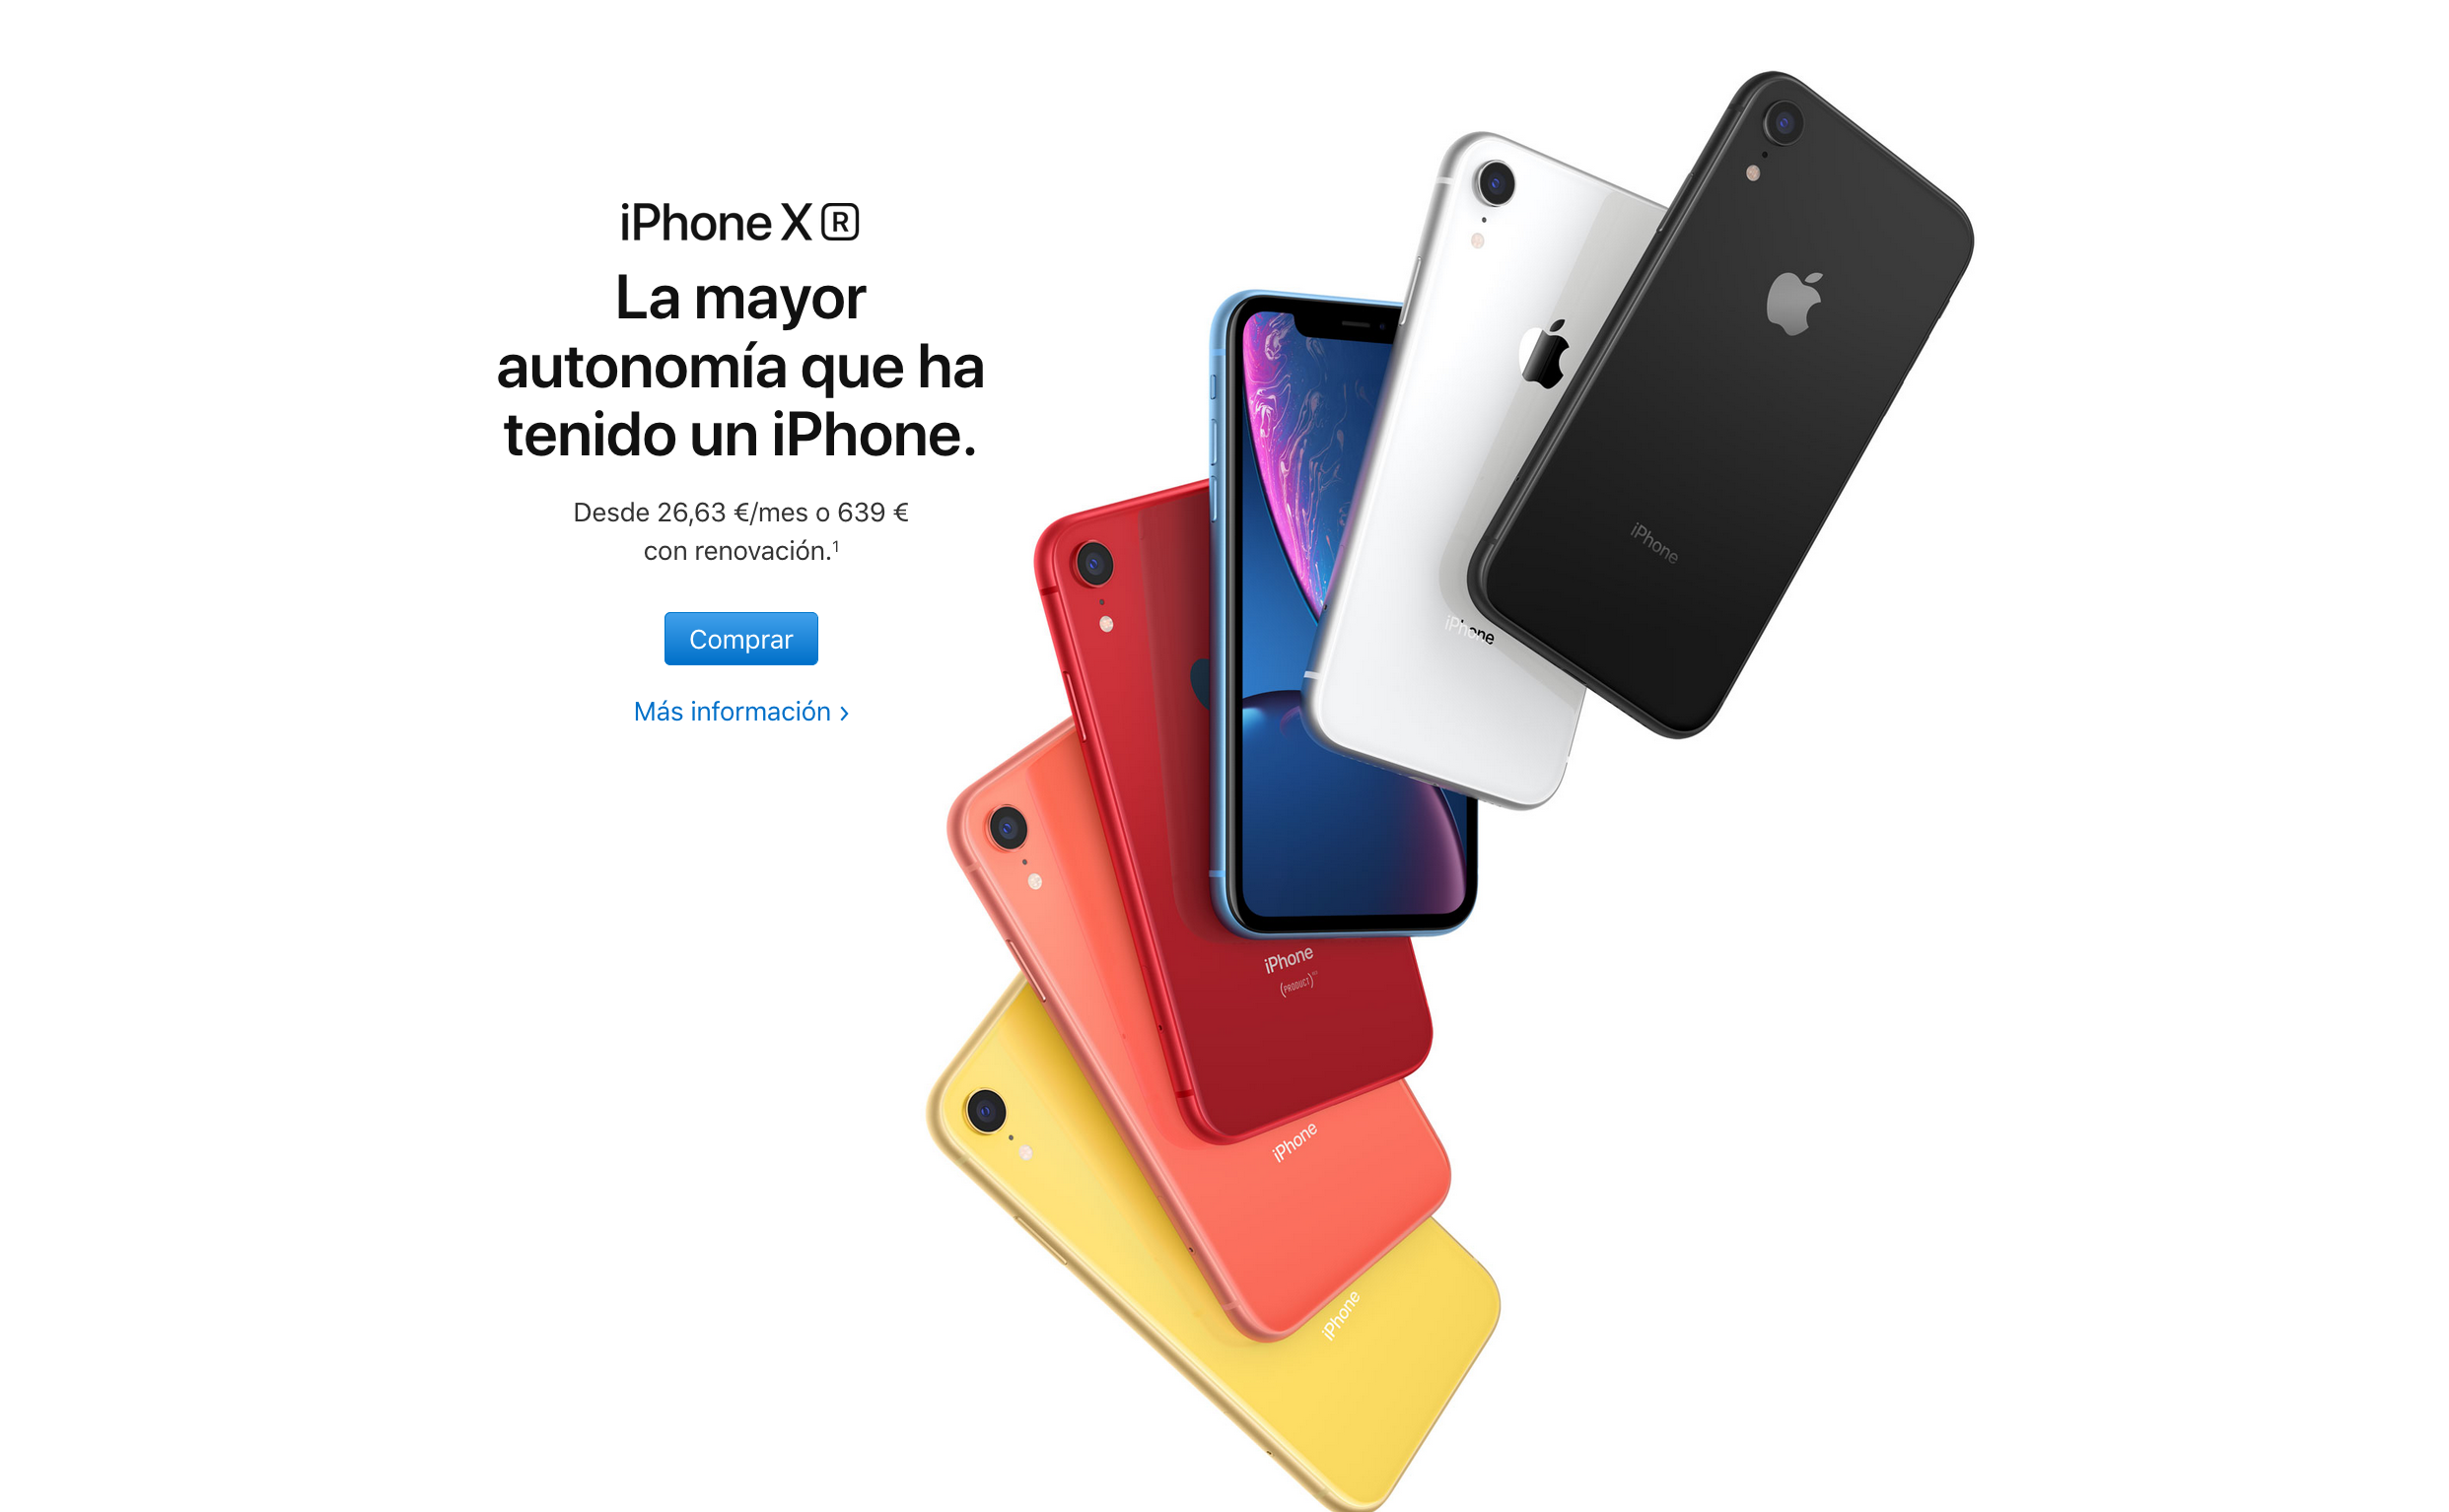 La experiencia de usuario de Apple